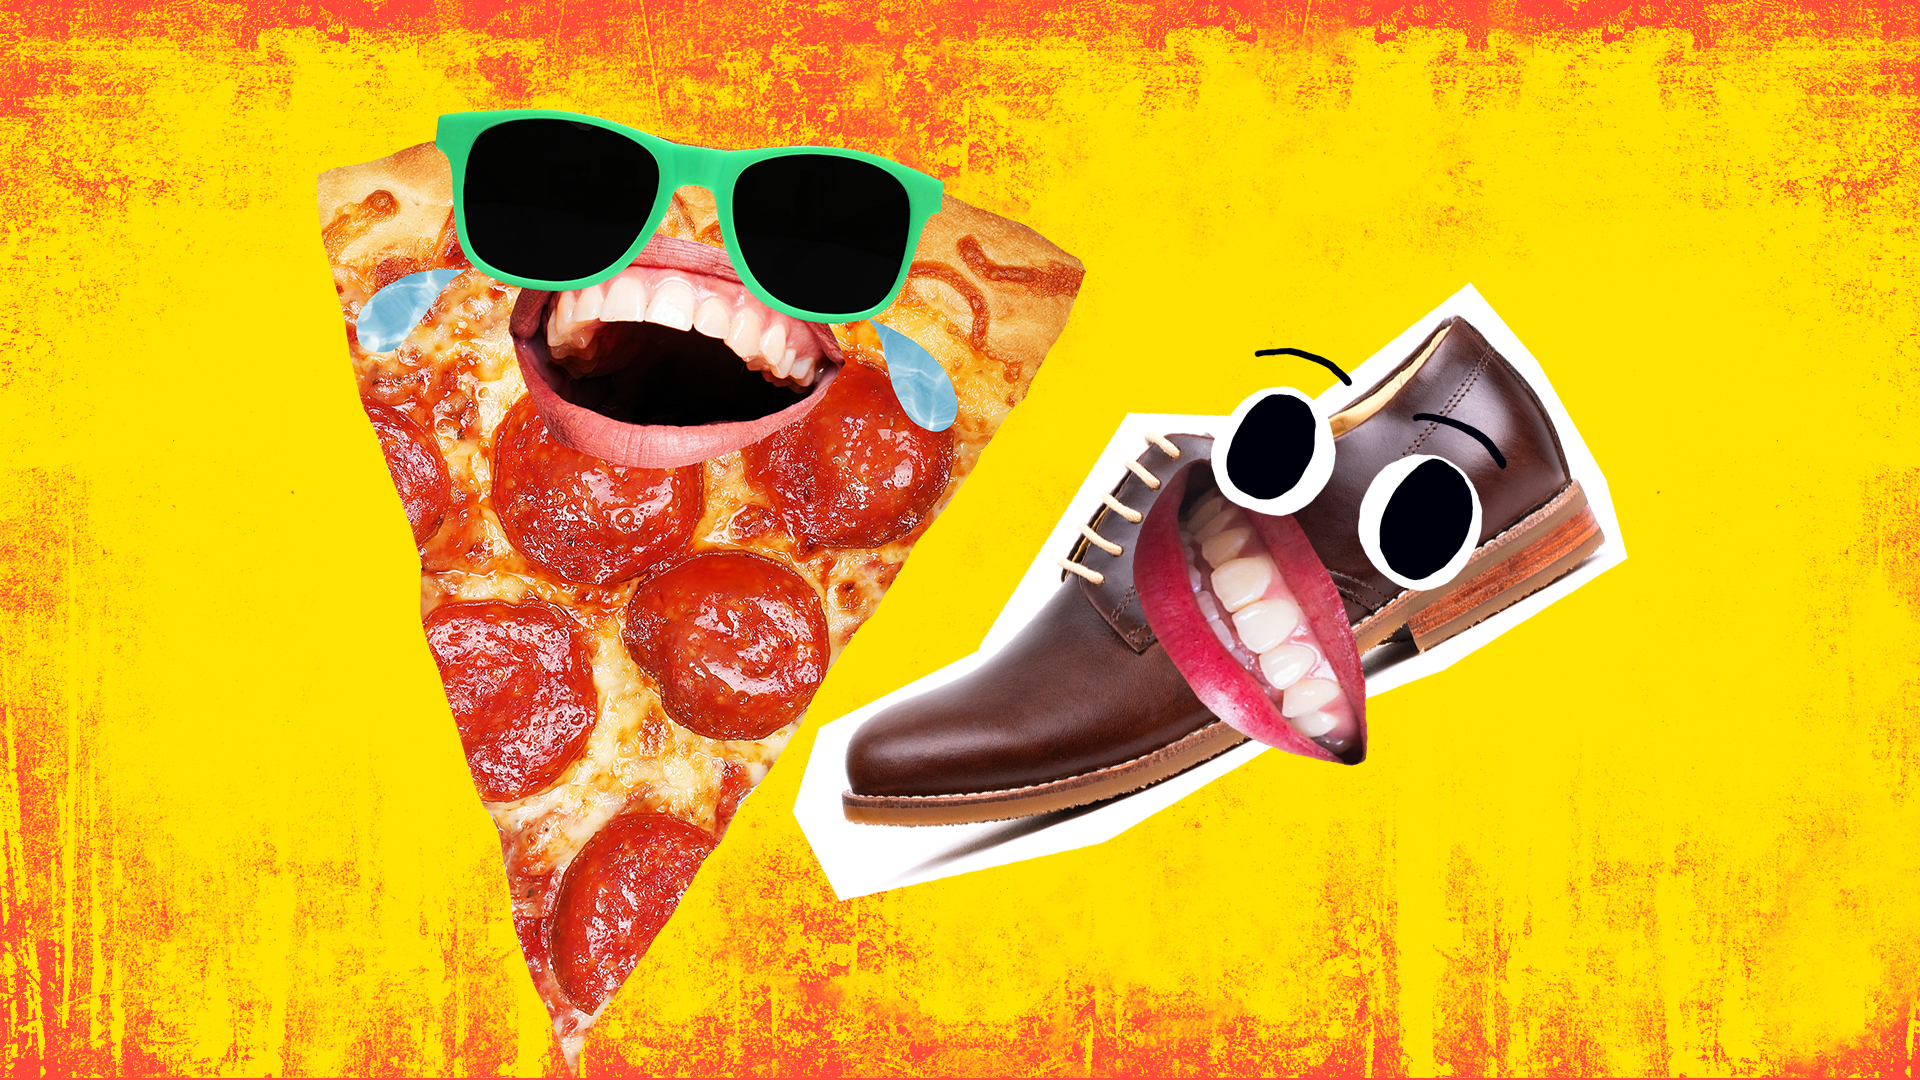 A laughing slice of pizza and a grinning brown shoe